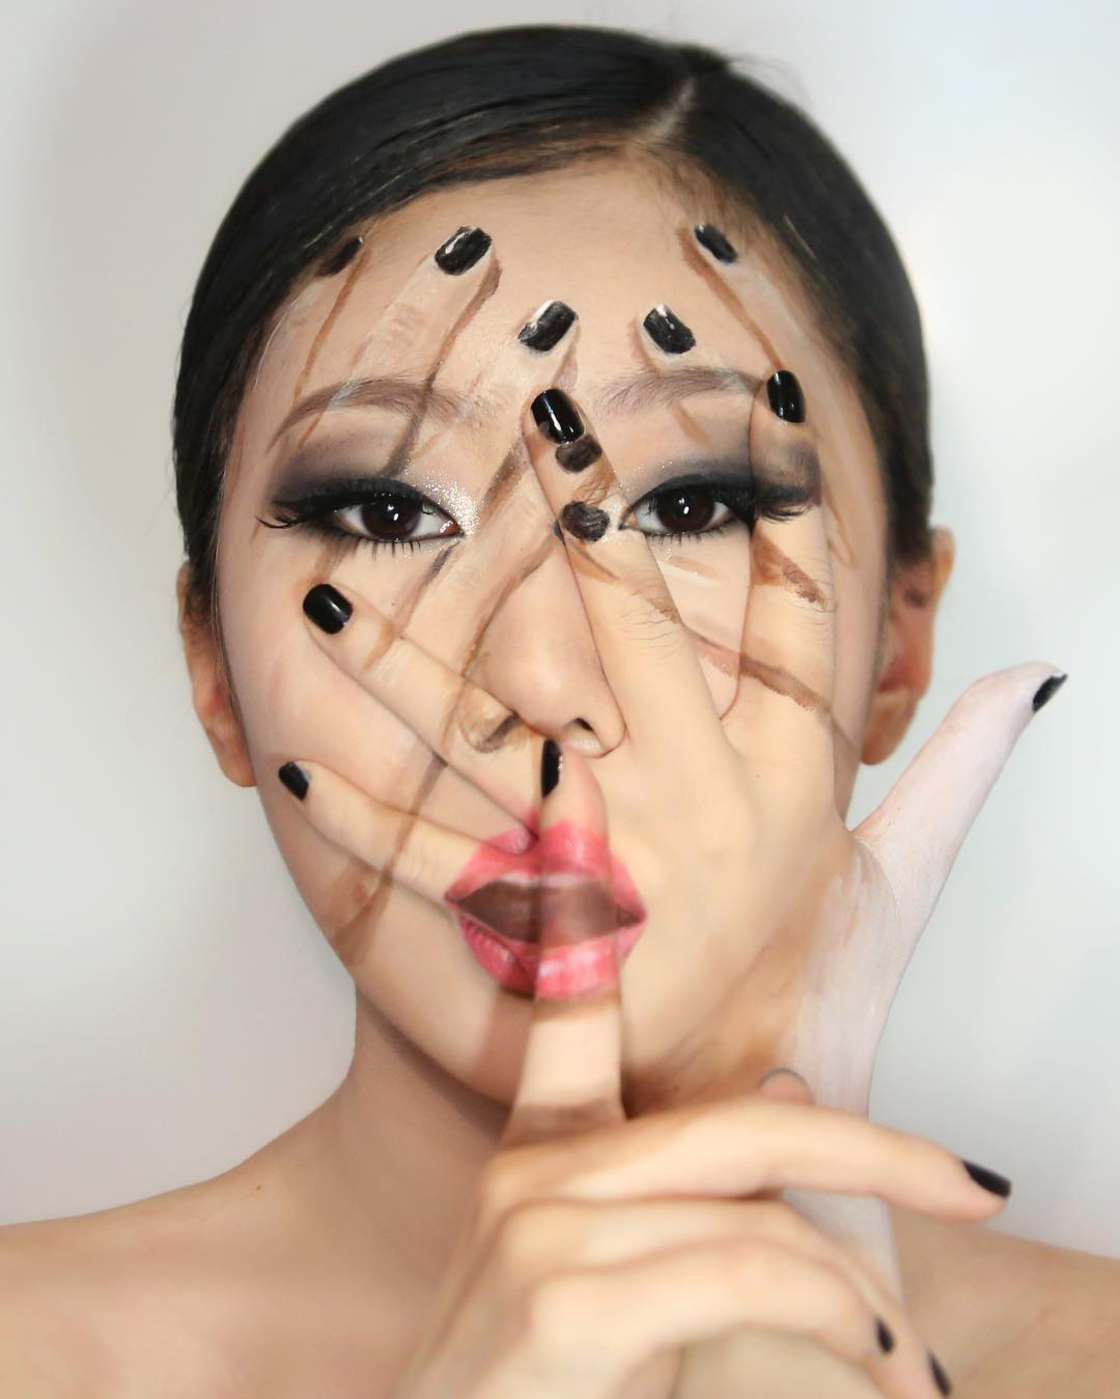 The latest body illusions by Dain Yoon